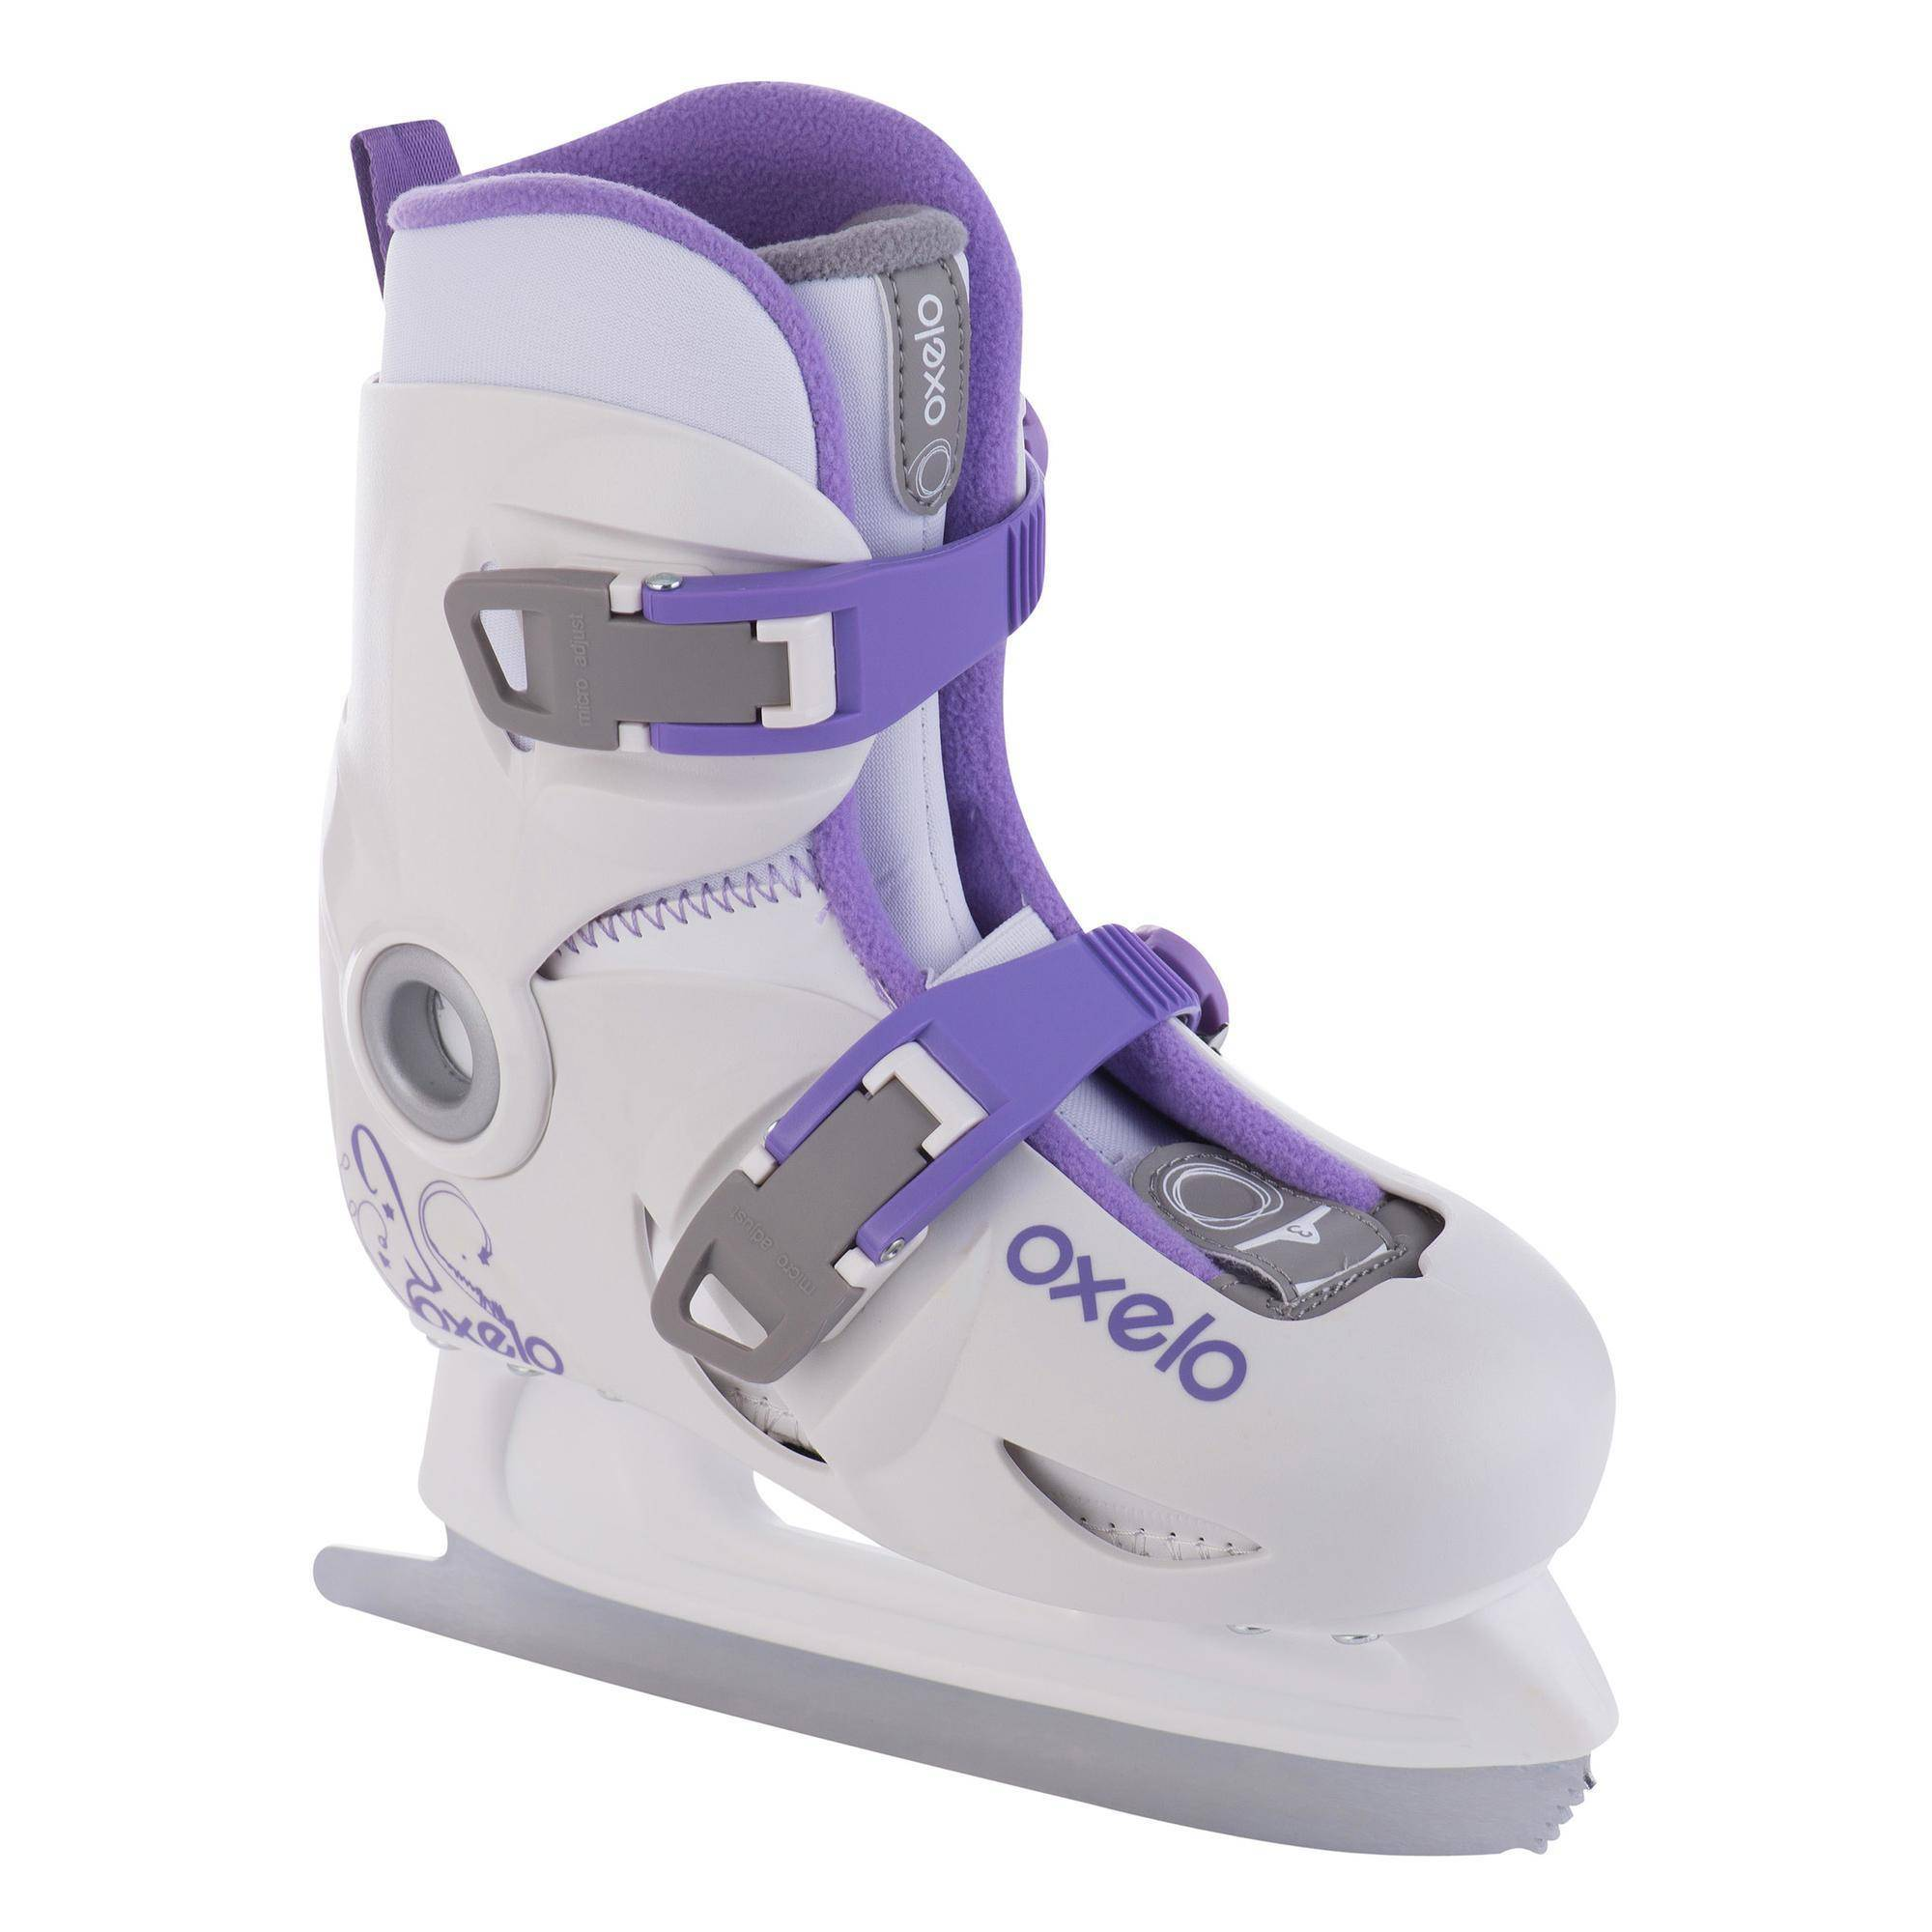 Oxelo Patins à glace enfant fille PLAY 3 BLANC - Oxelo